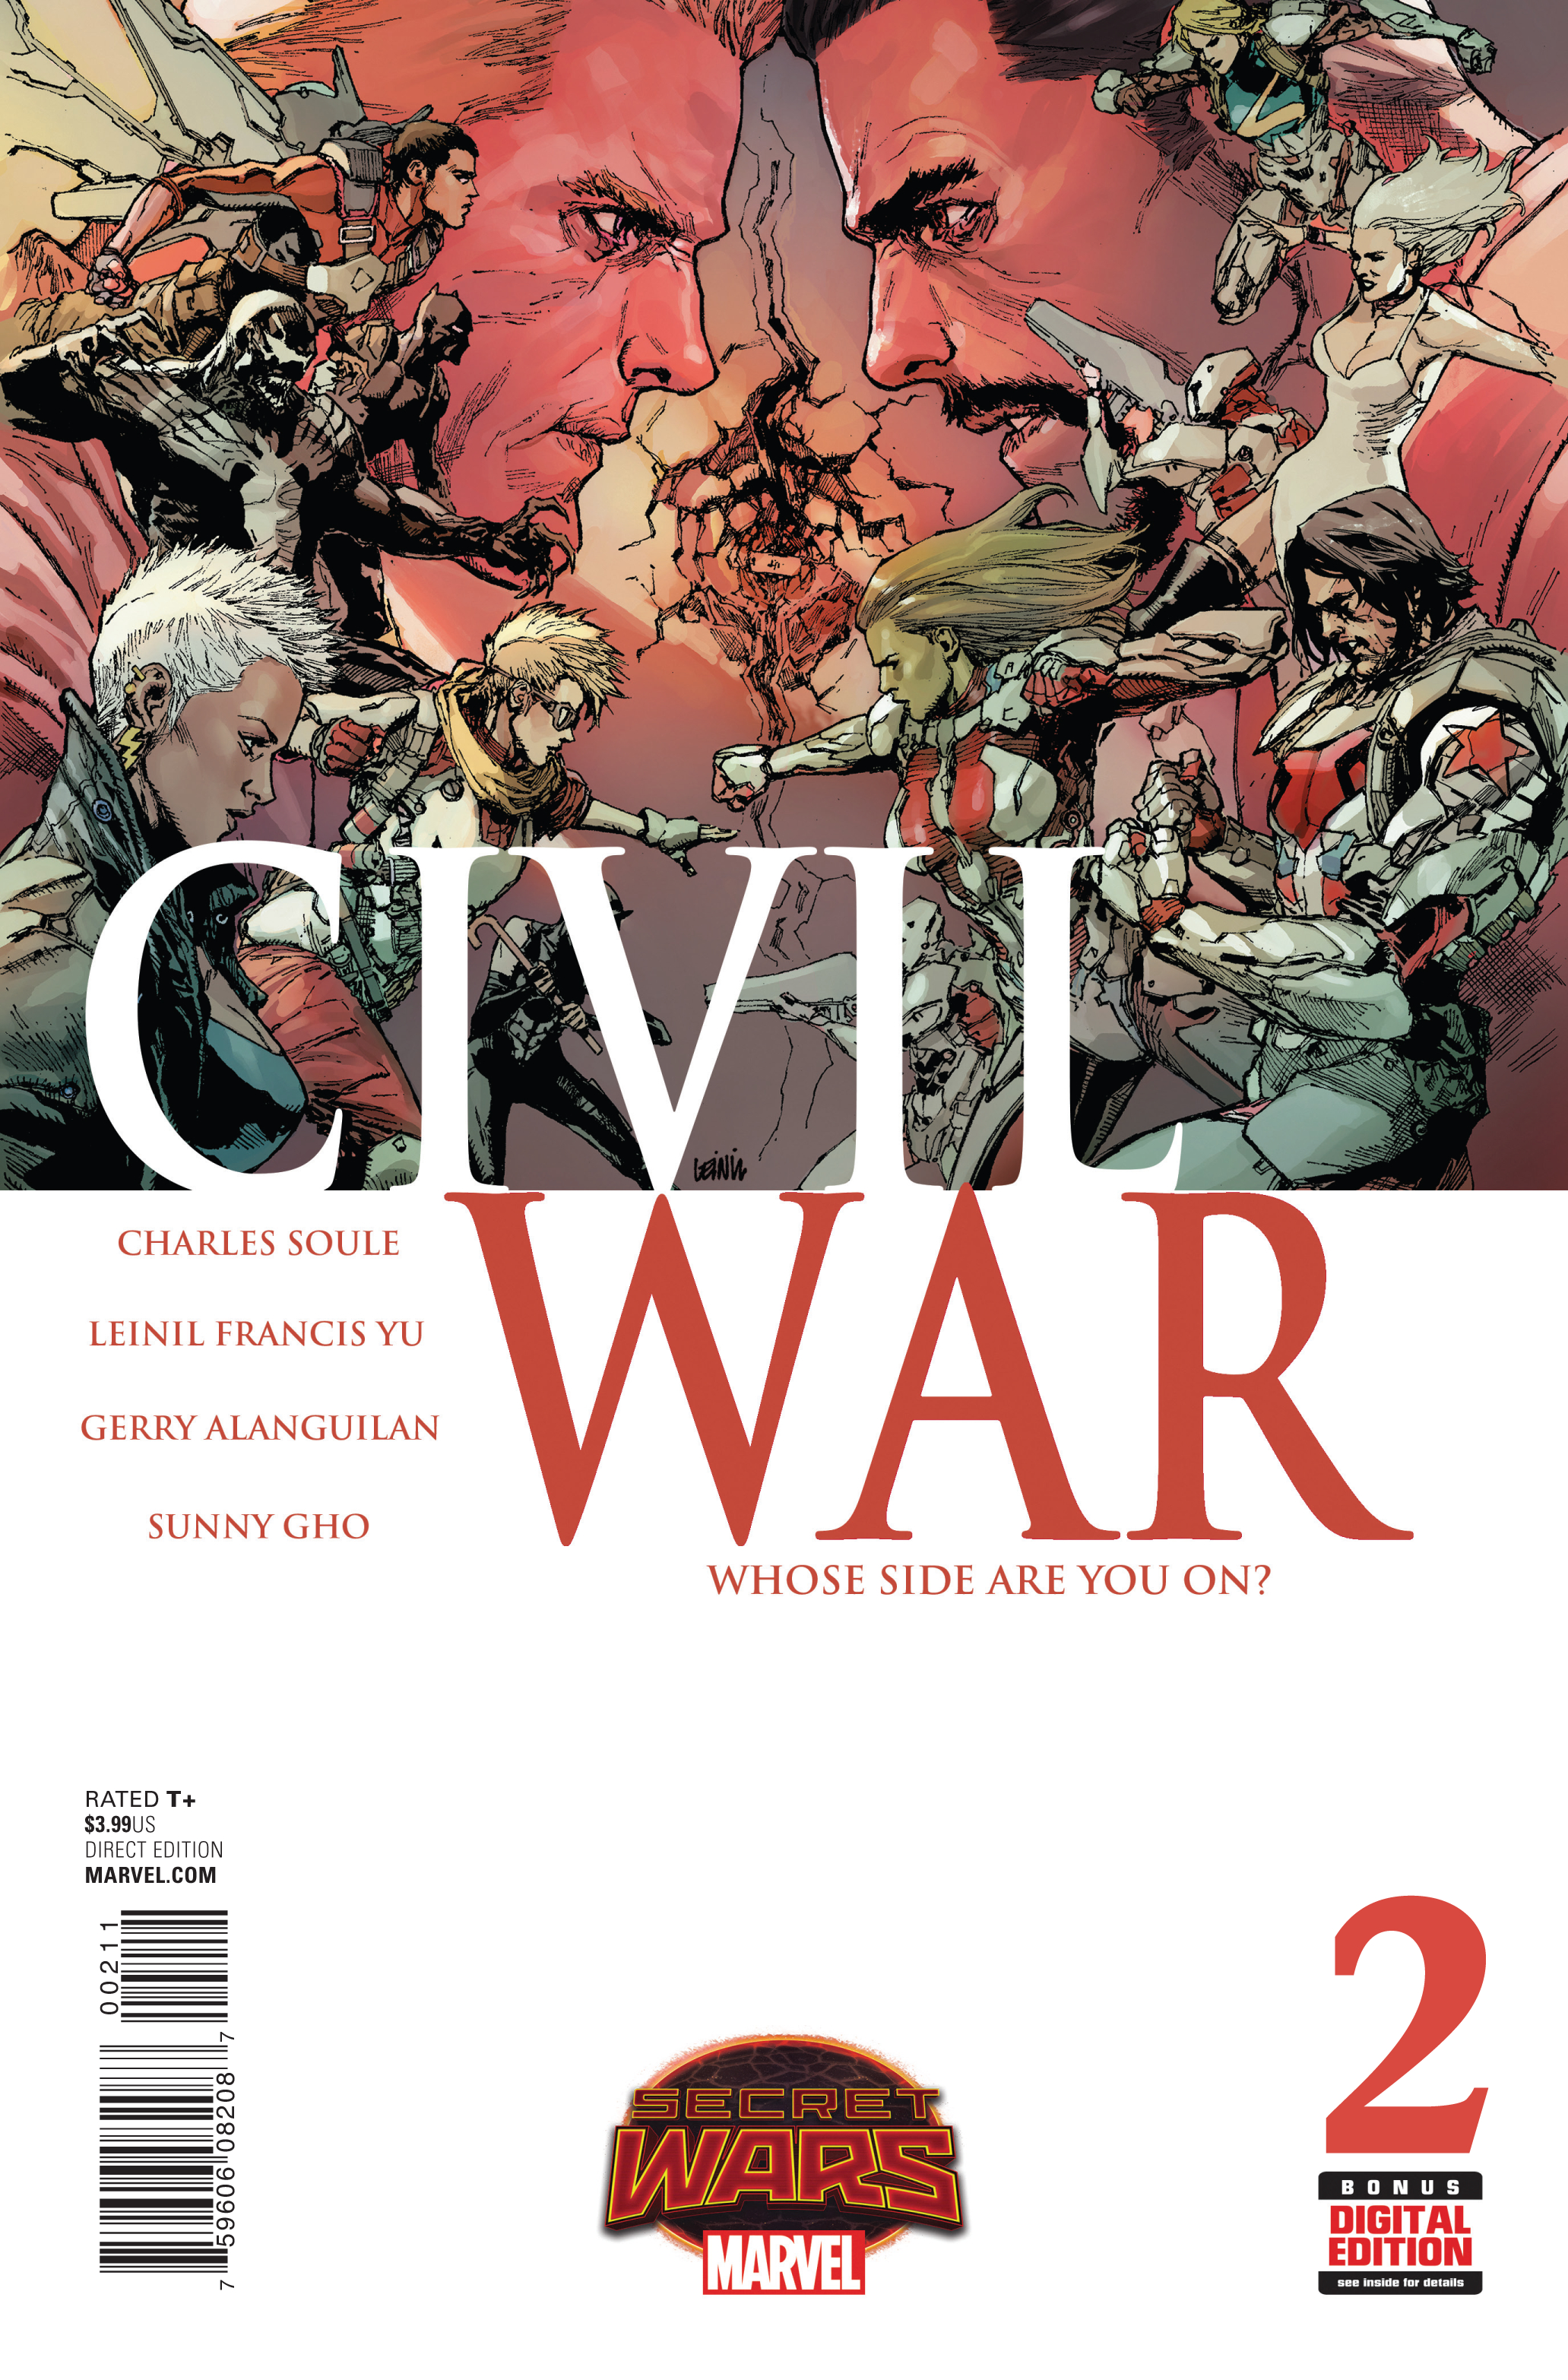 CIVIL WAR #2 SWA